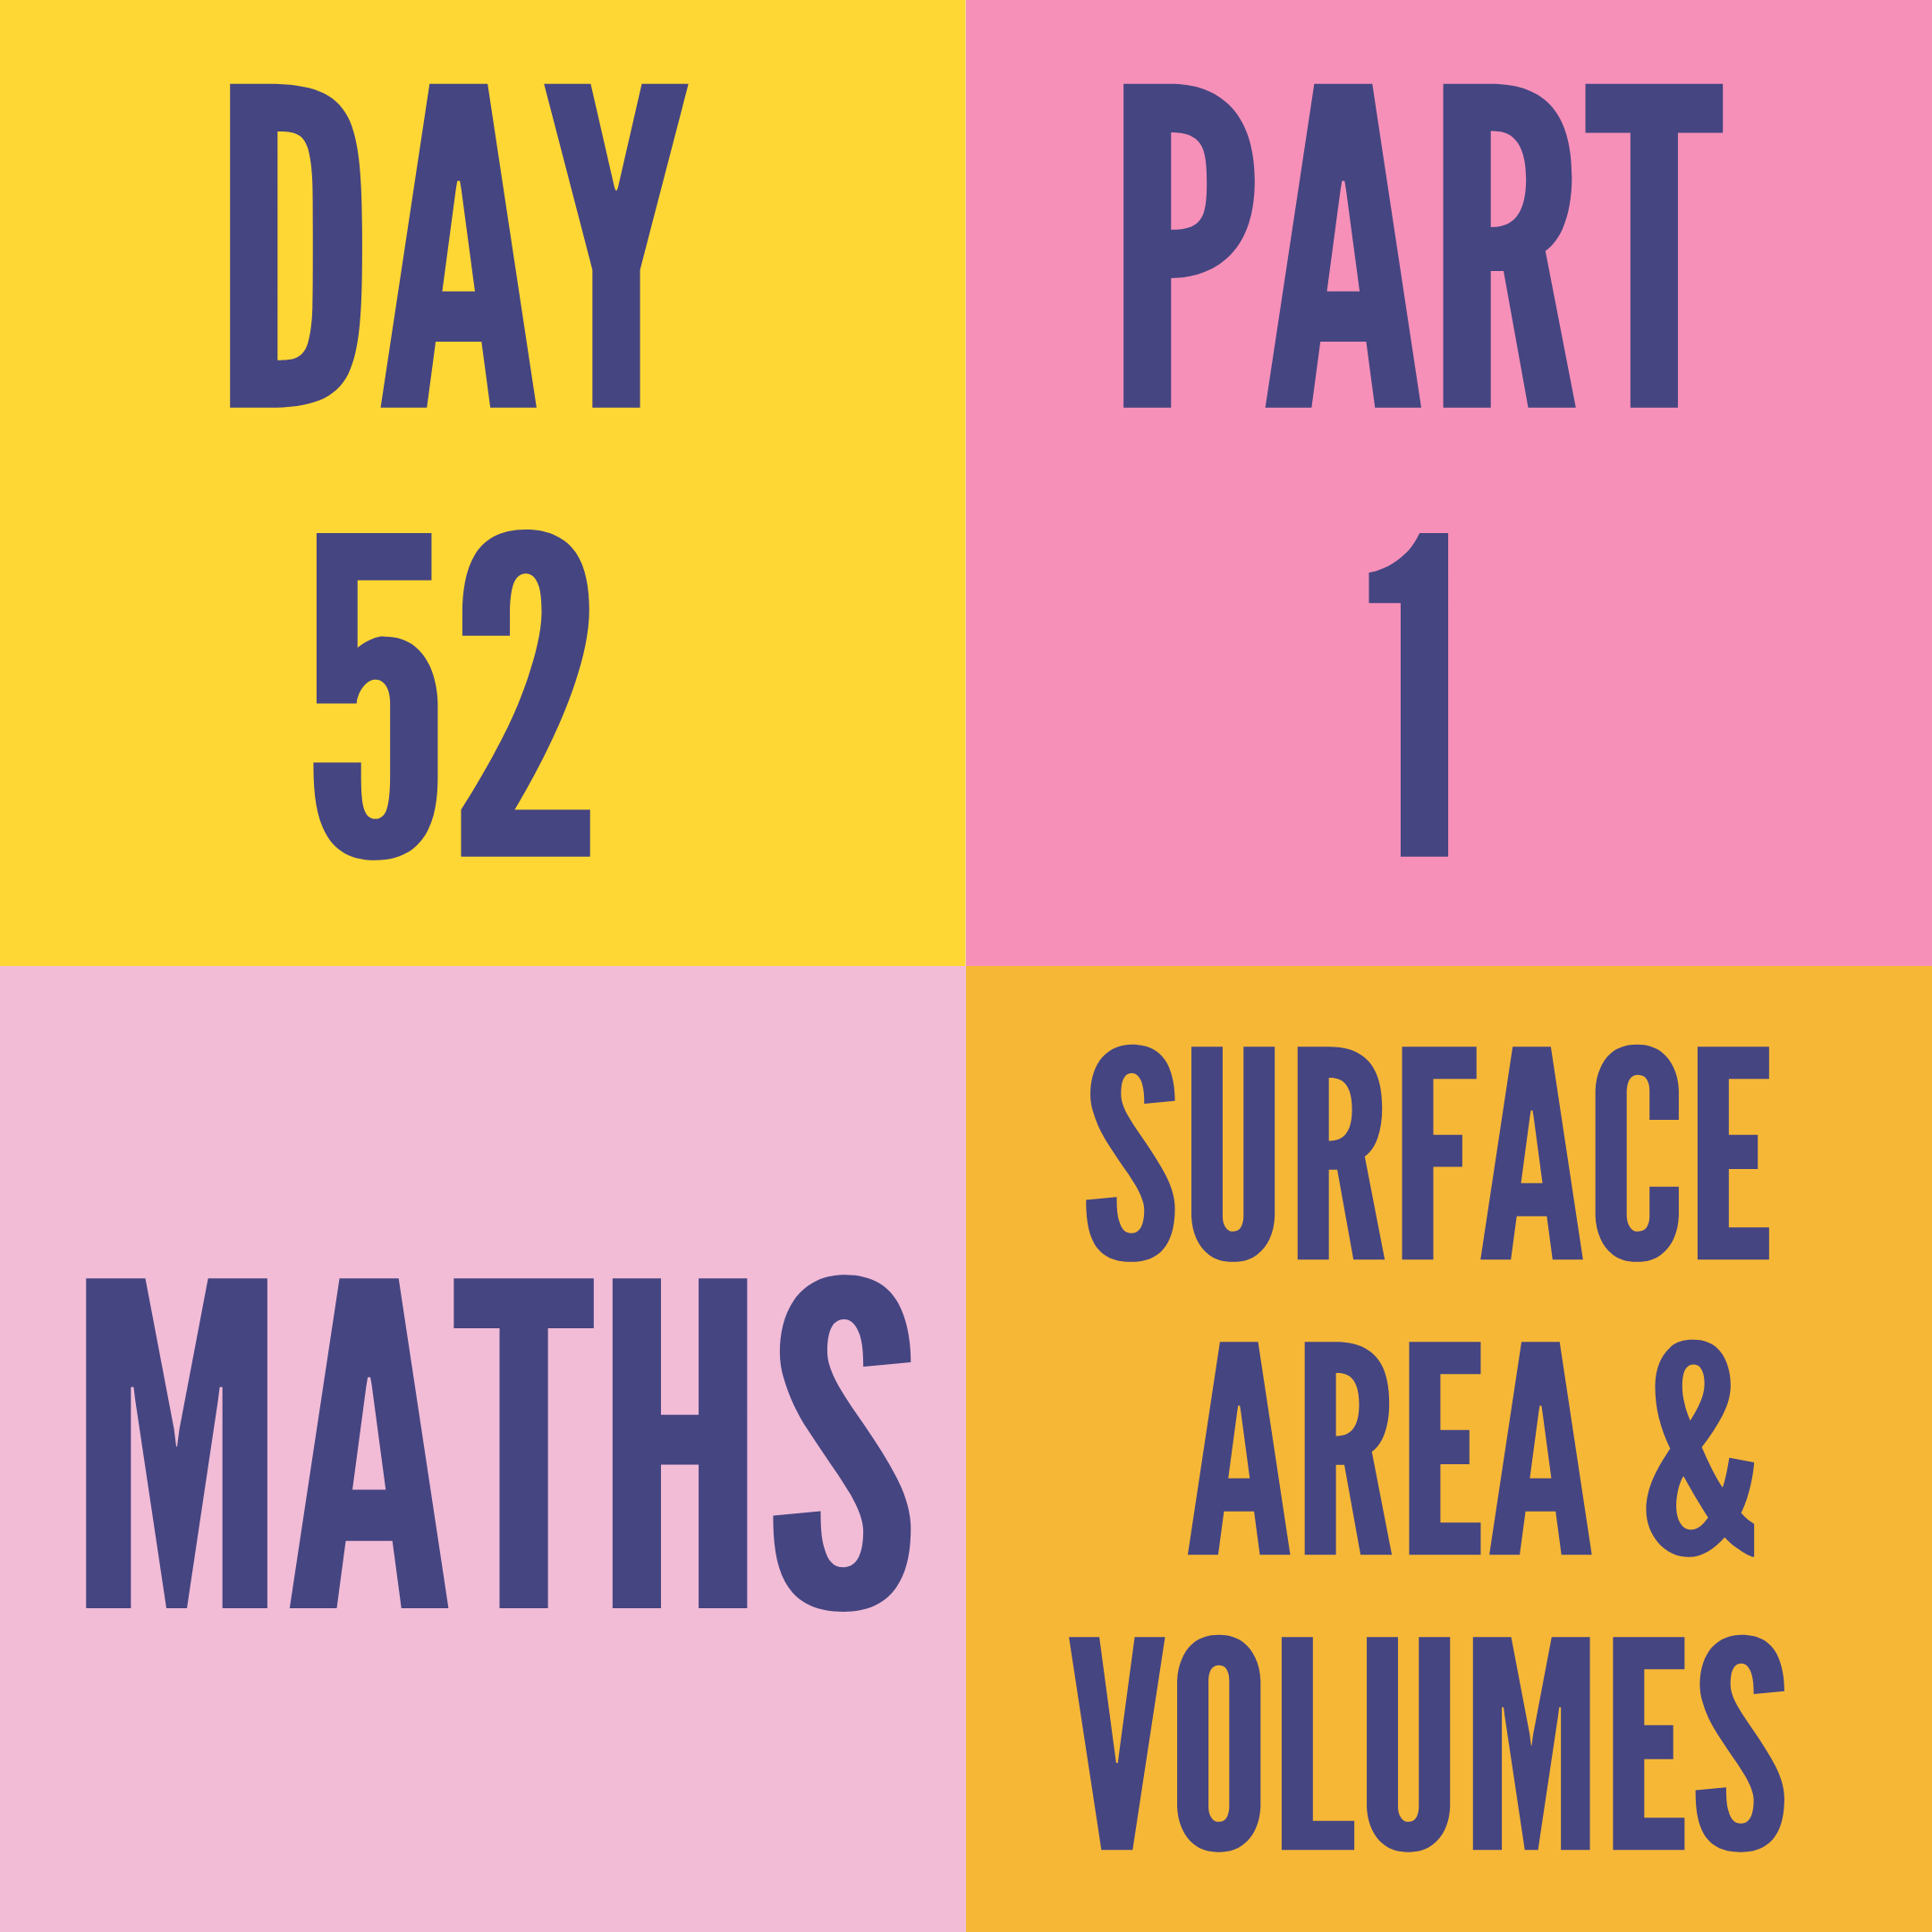 DAY-52 PART-1 SURFACE AREA & VOLUMES